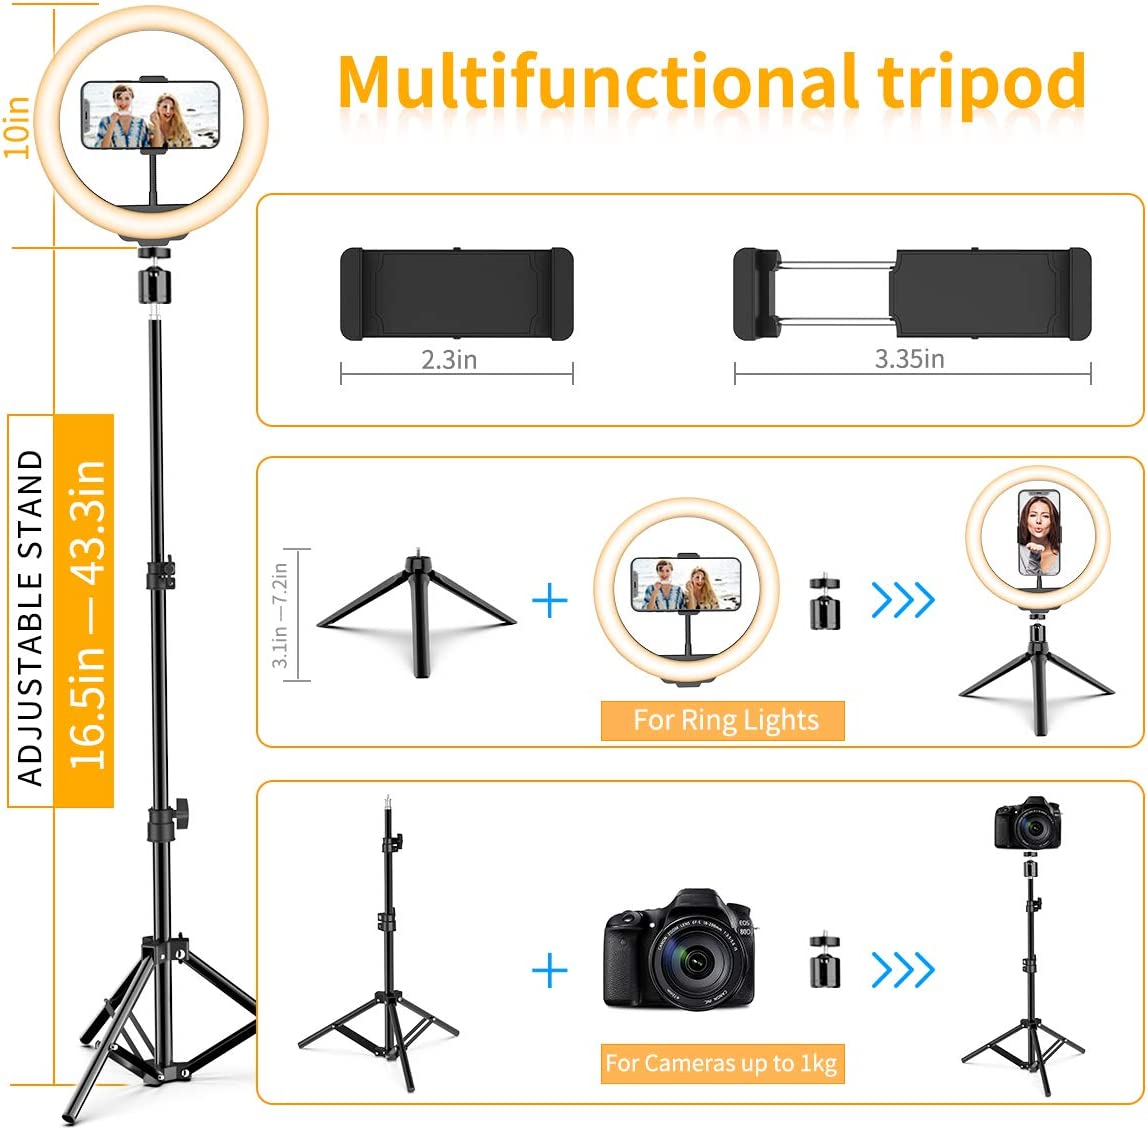 10 Selfie Ring Light with Tripod Stand /& Cell Phone Holder Upgraded Dimmable Camera Ring Light for TikTok//YouTube//Live Stream//Makeup//Photography Compatible with iPhone Android Samsung